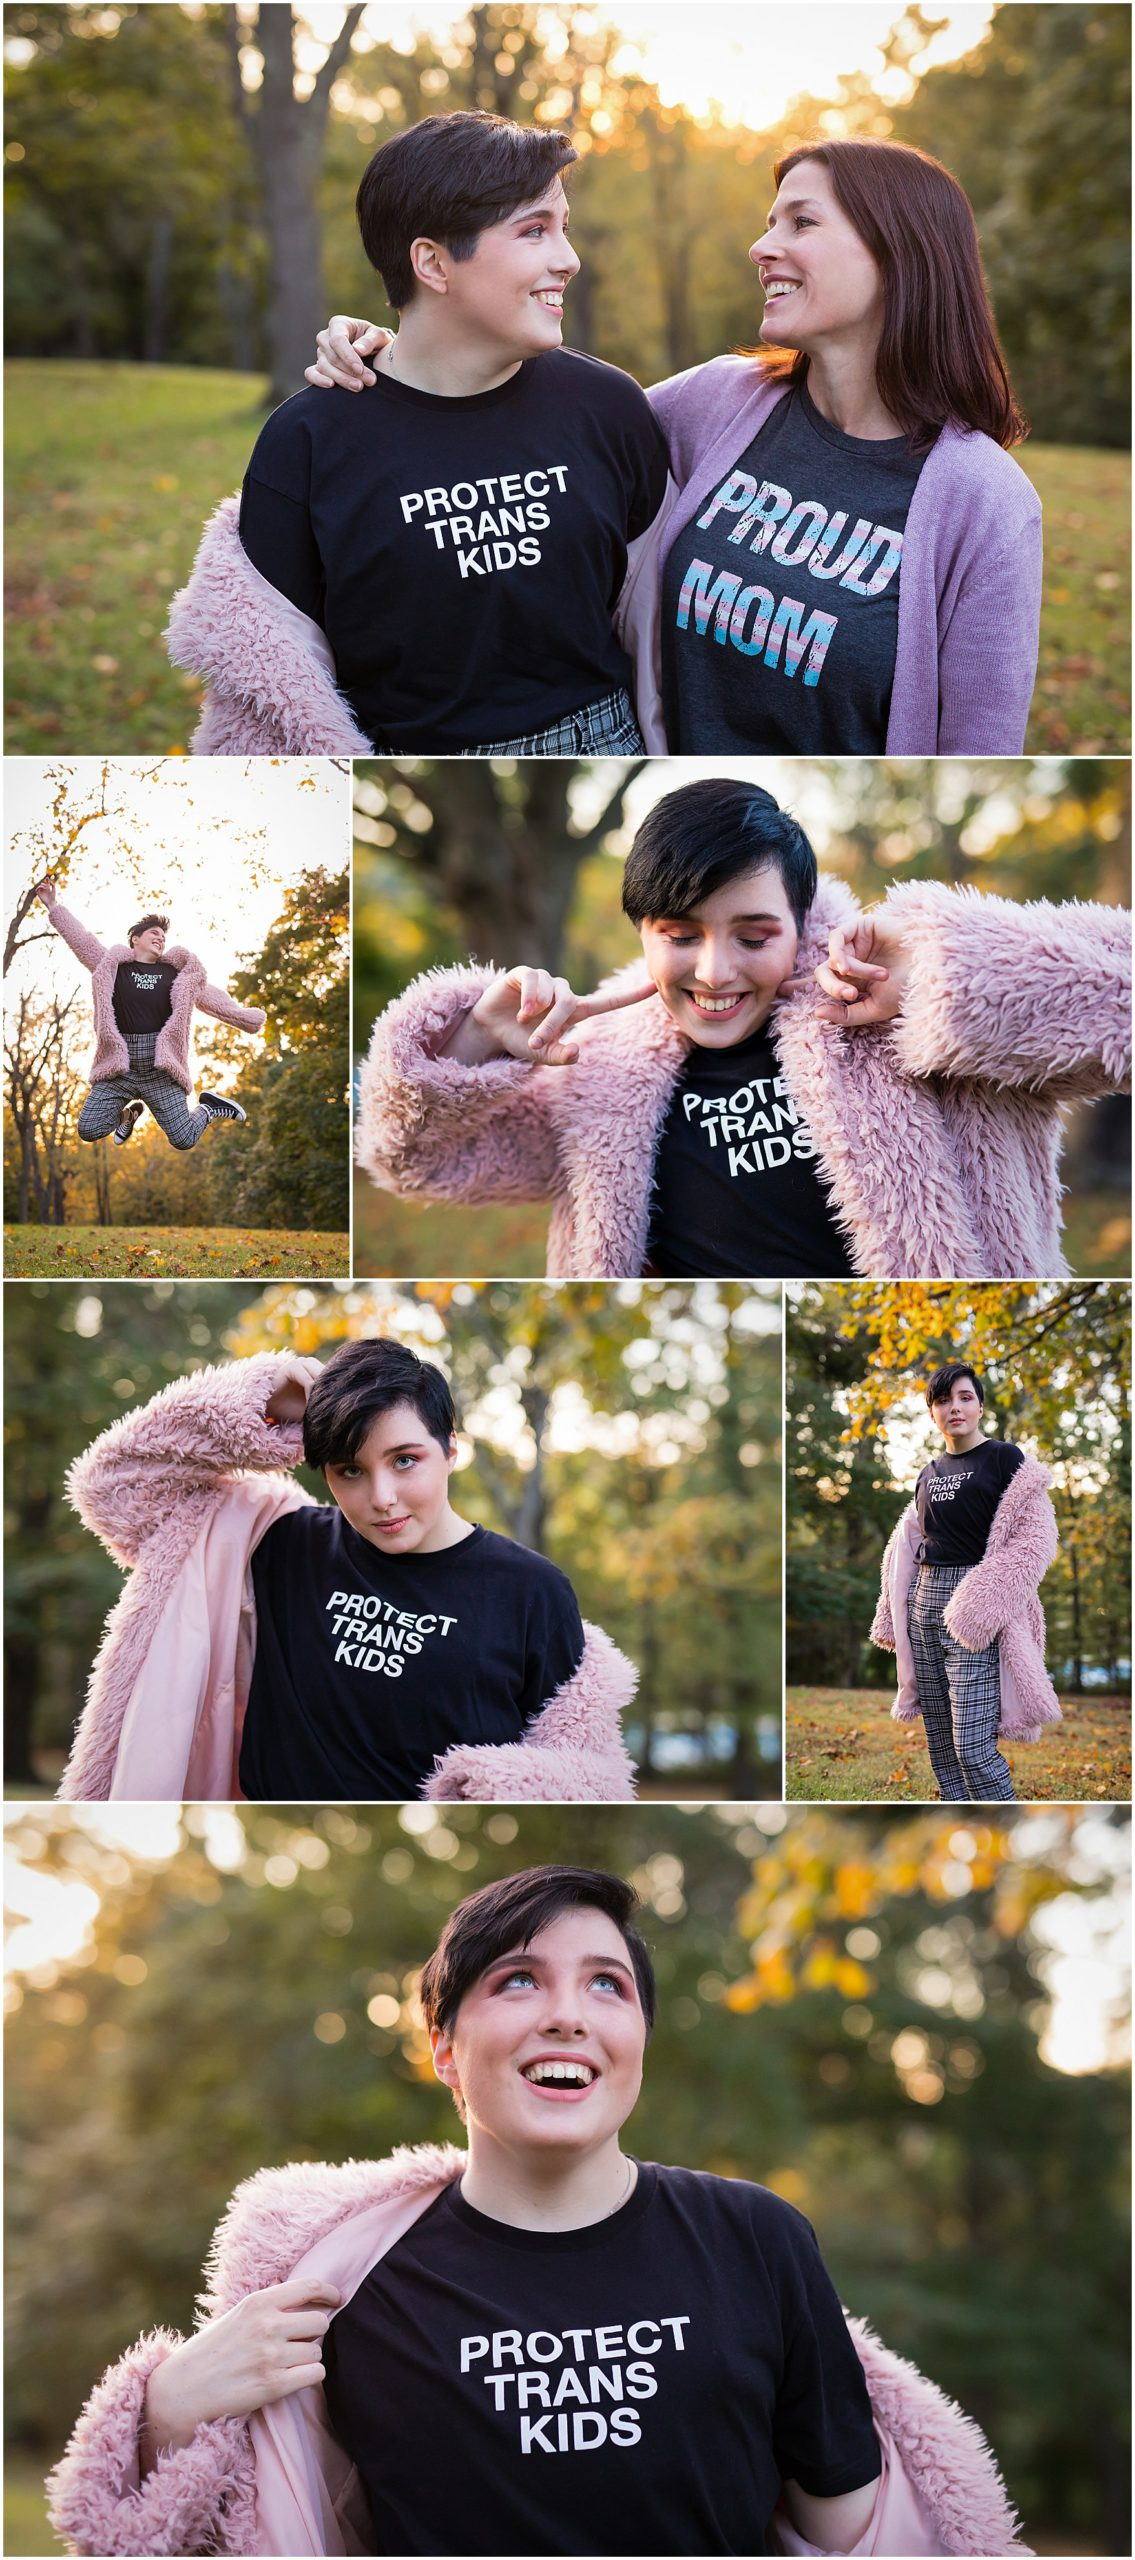 trans high school student senior portrait with pink jacket in park